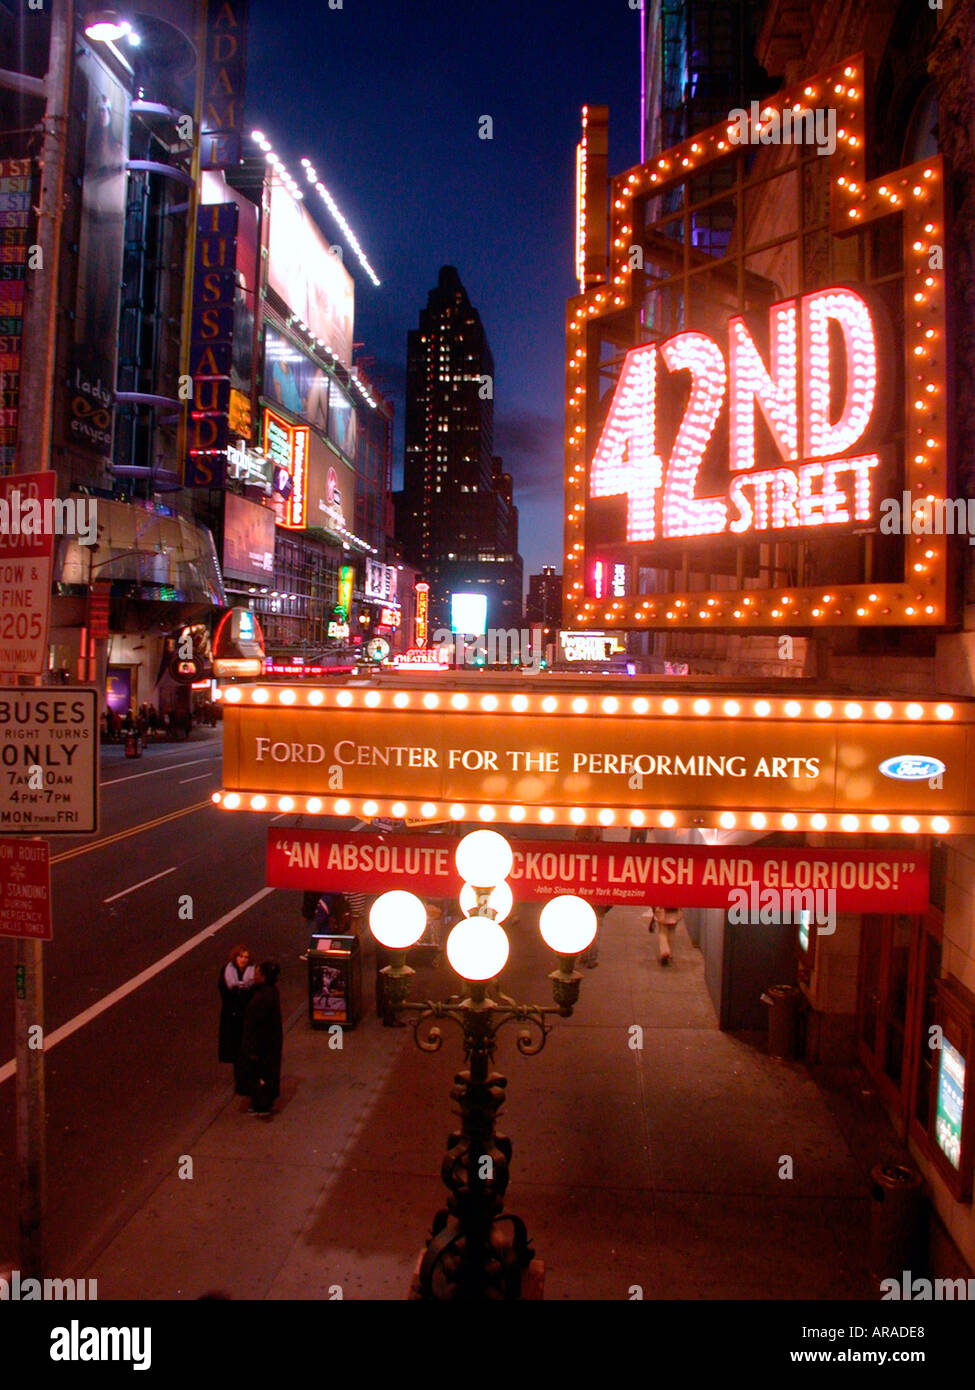 The Ford Theater on 42nd St in Times Sqaure  - Stock Image